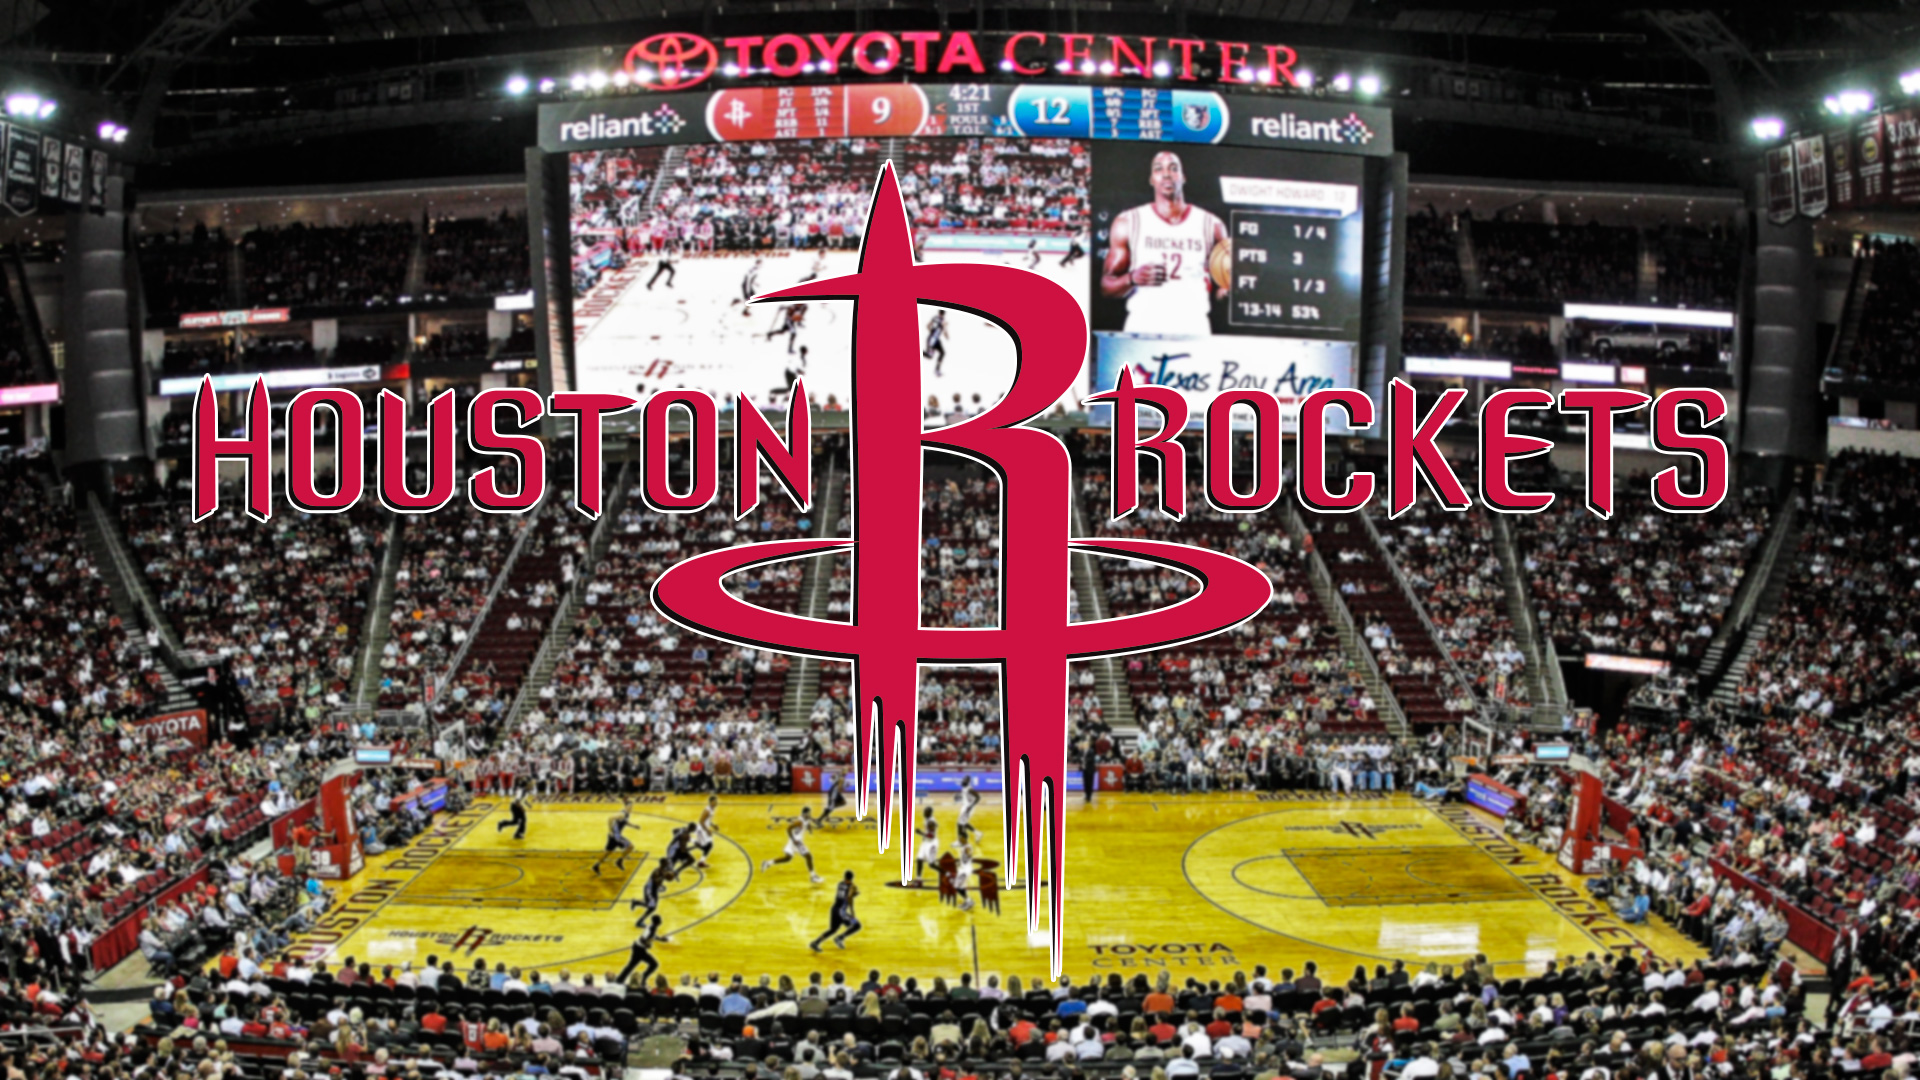 Houston-Rockets-042415-GETTY-FTR.jpg